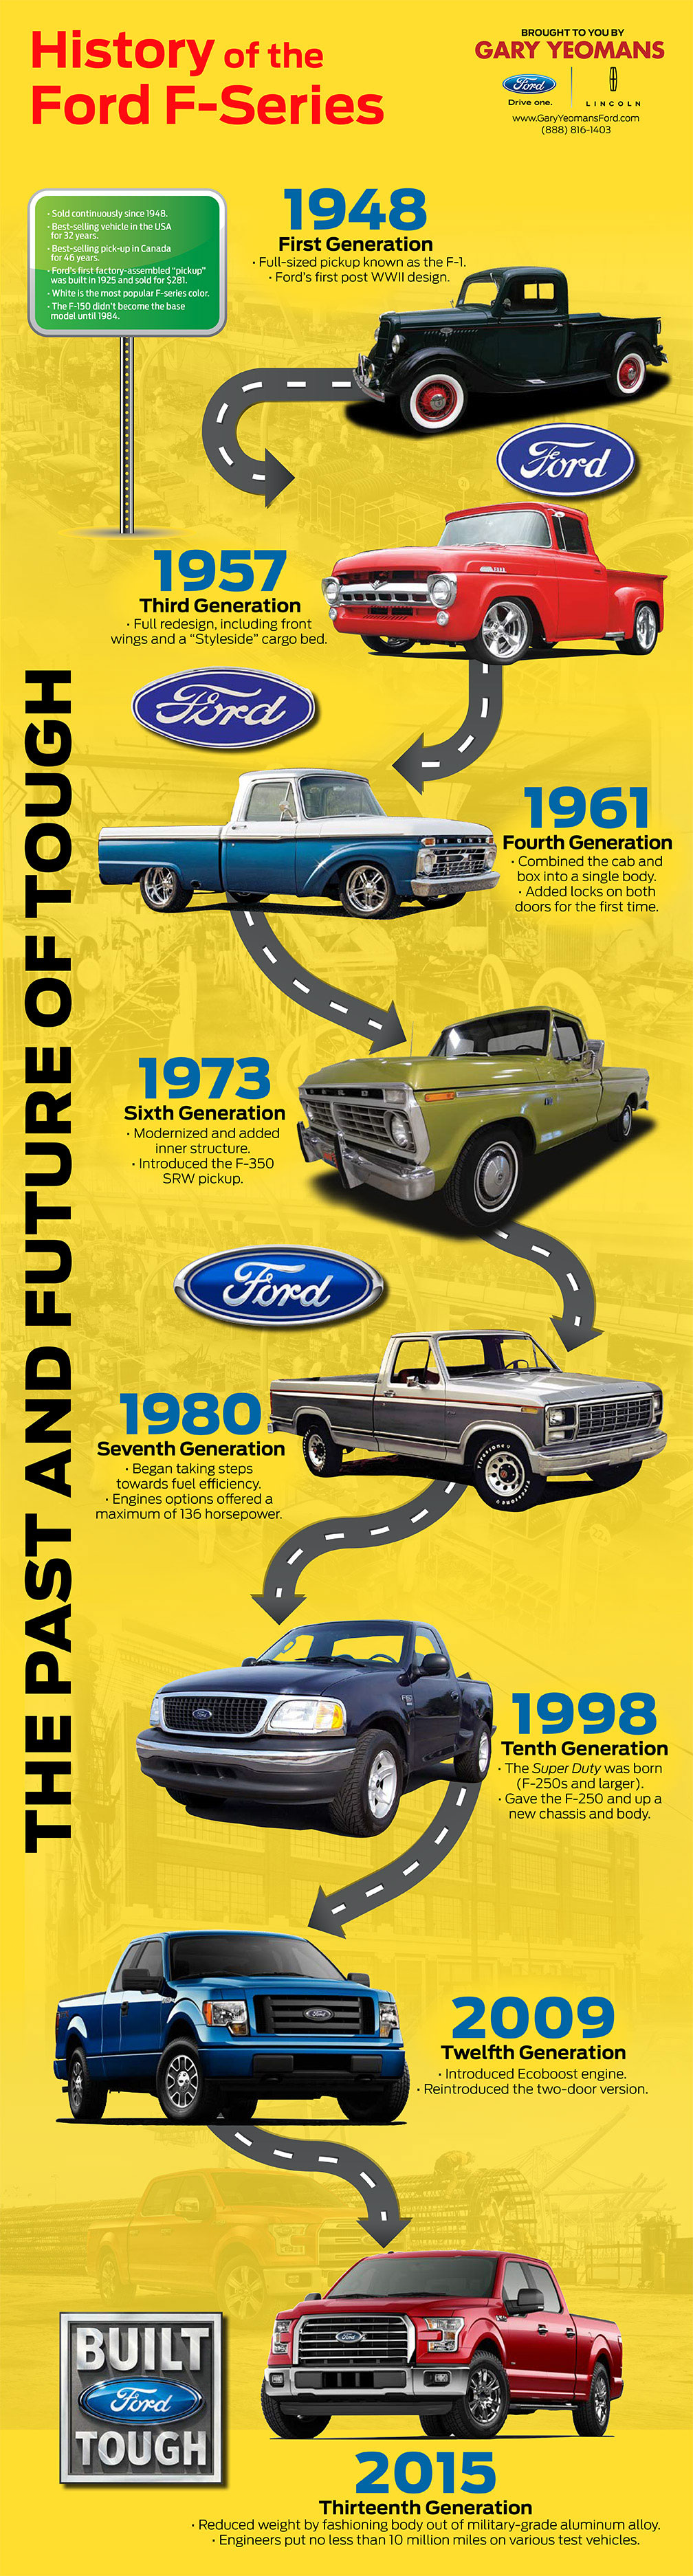 History Of The Ford F Series Infographic Only Infographic